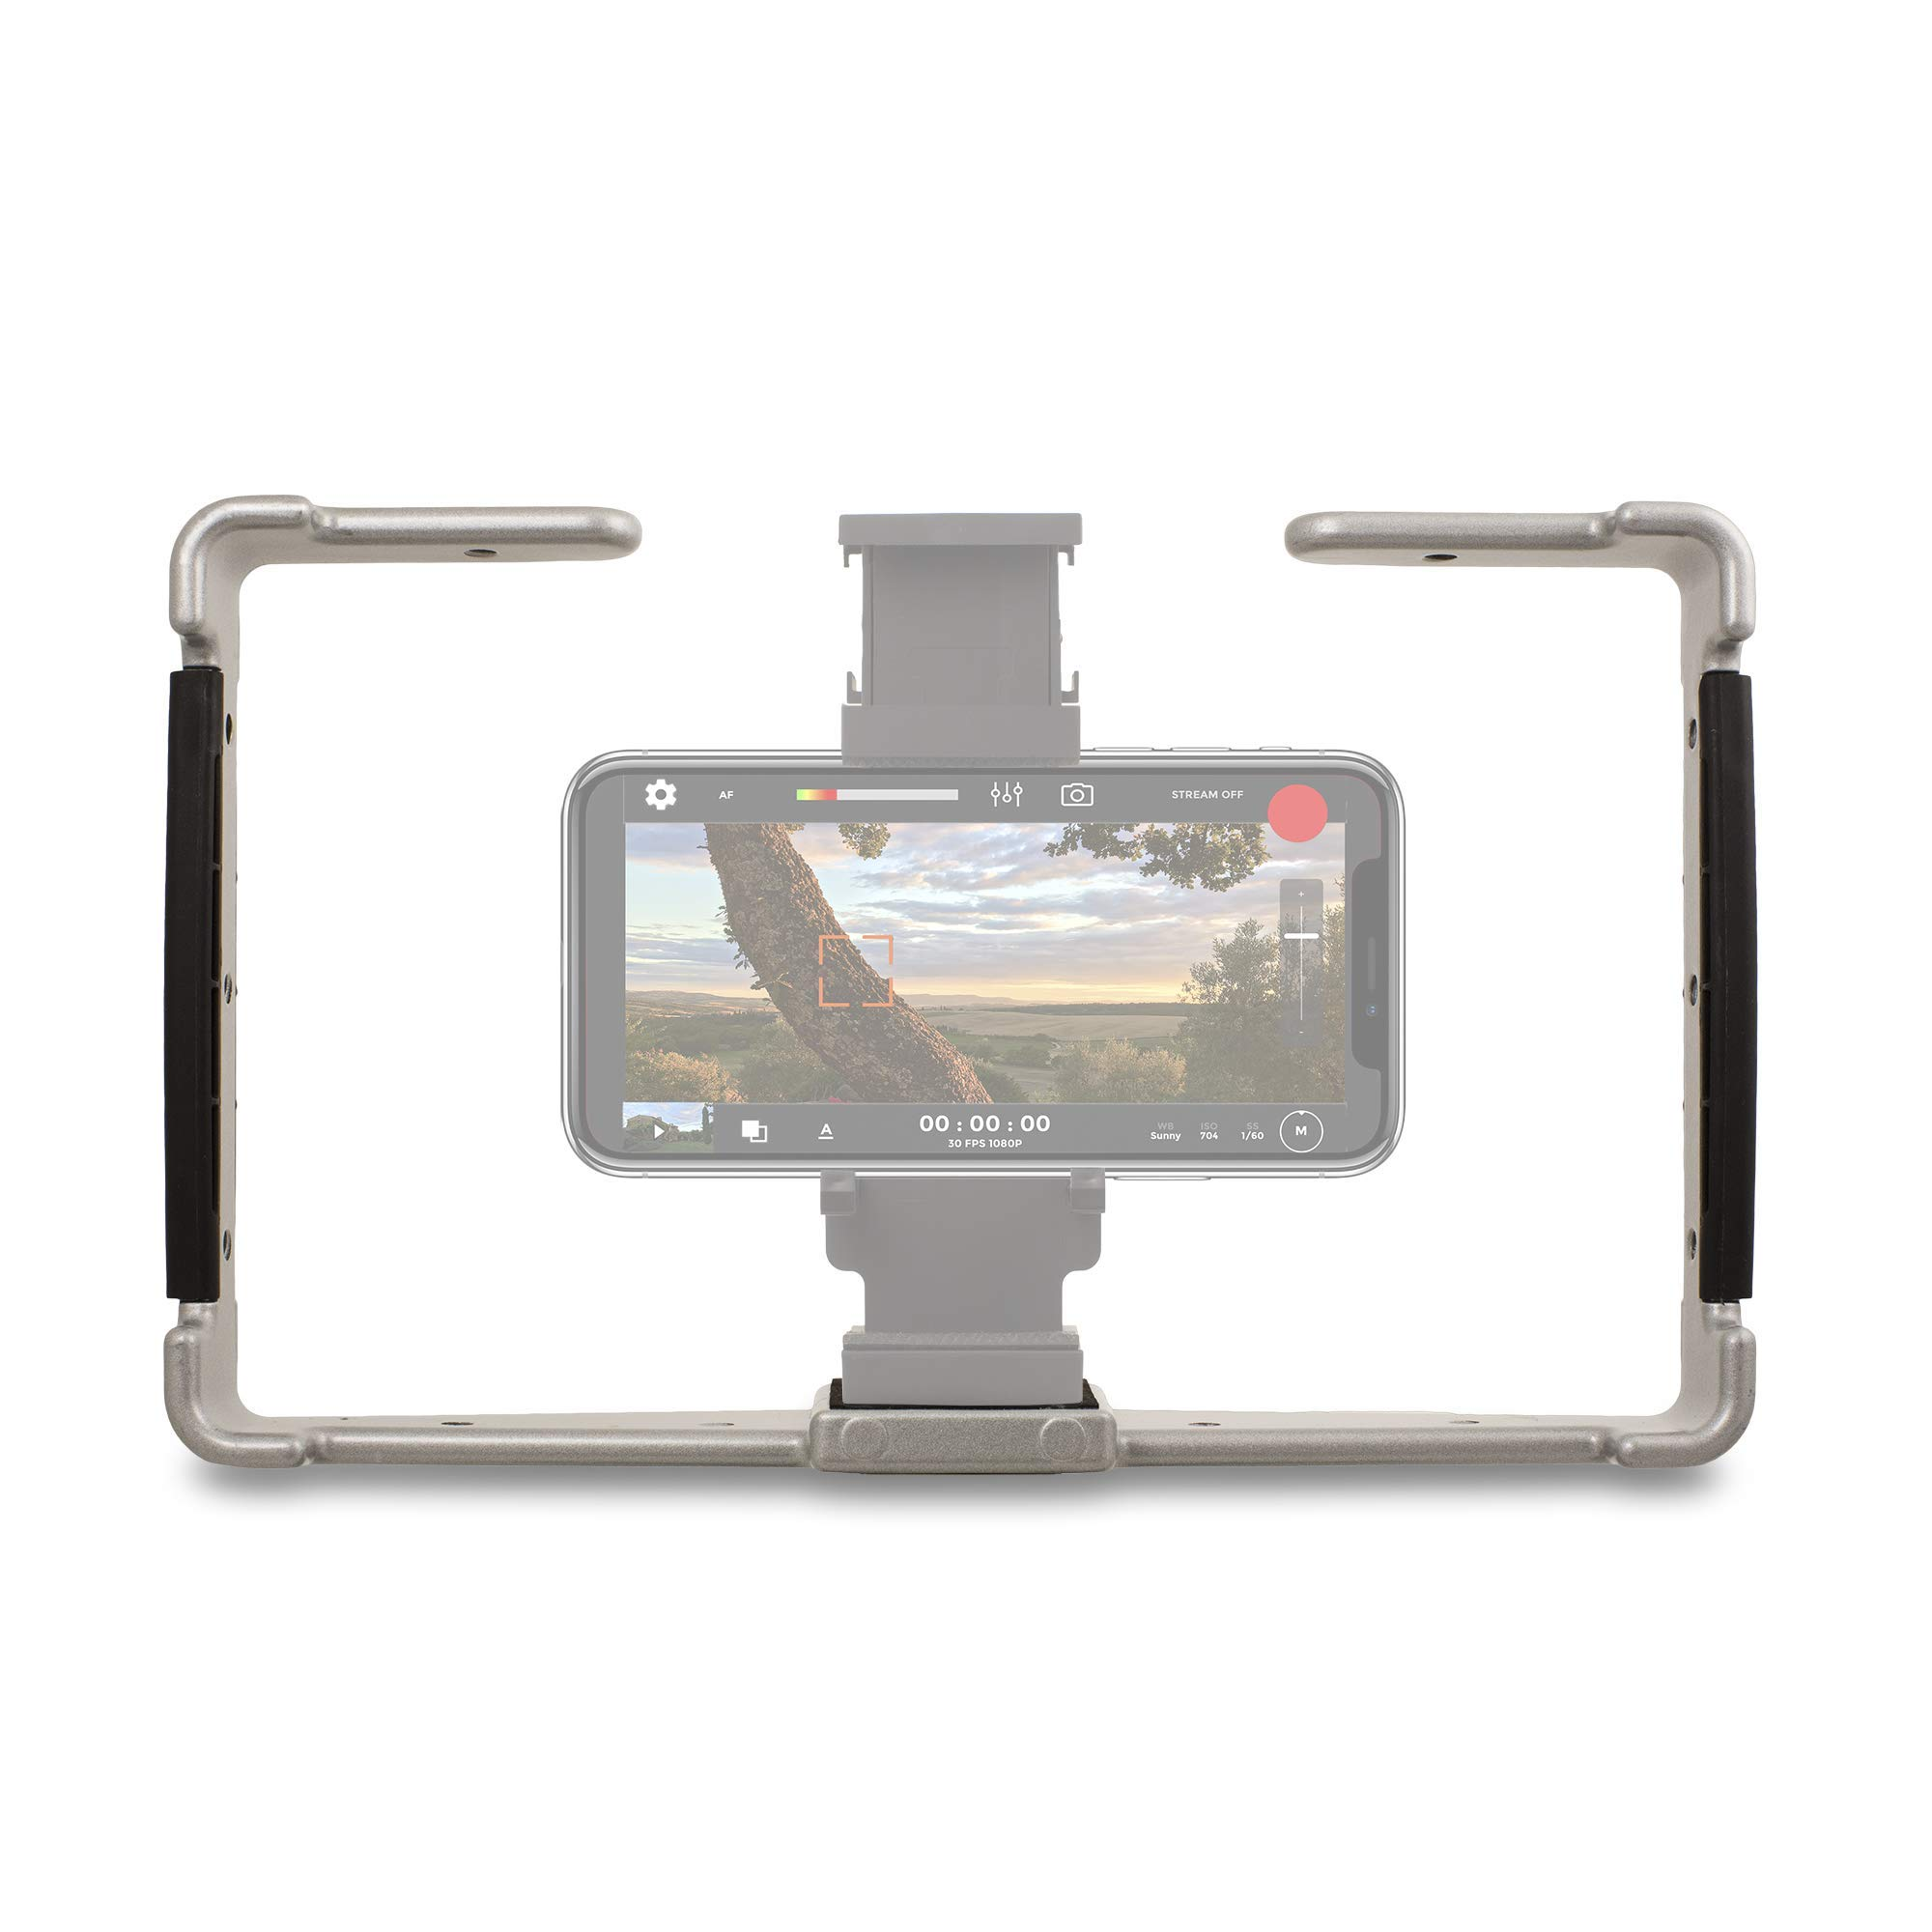 The Padcaster Universal Camera Cage for Phones and Cameras by PADCASTER